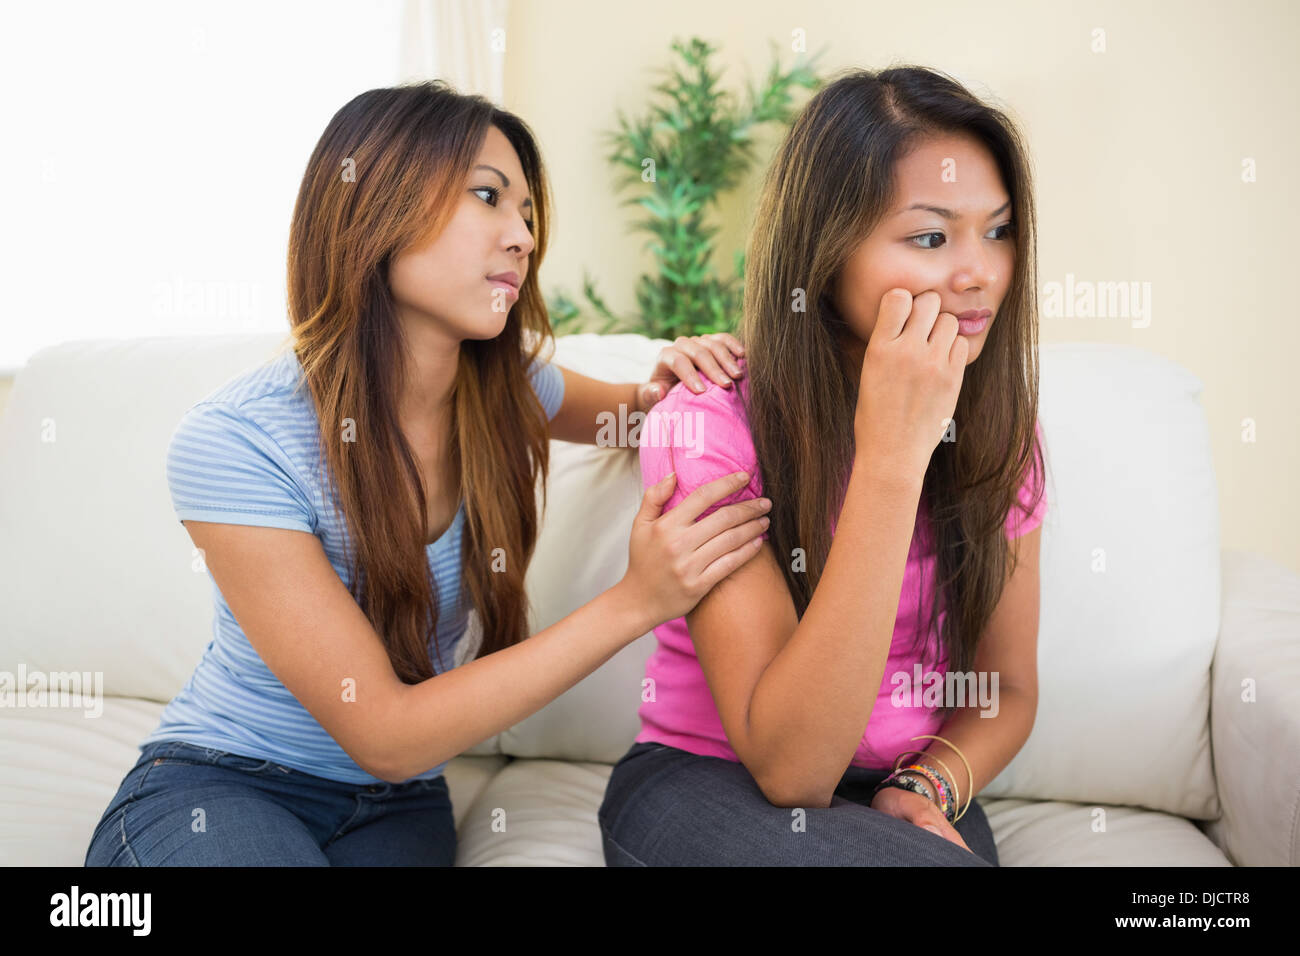 Sad woman sitting on a couch being consoled by her sister - Stock Image